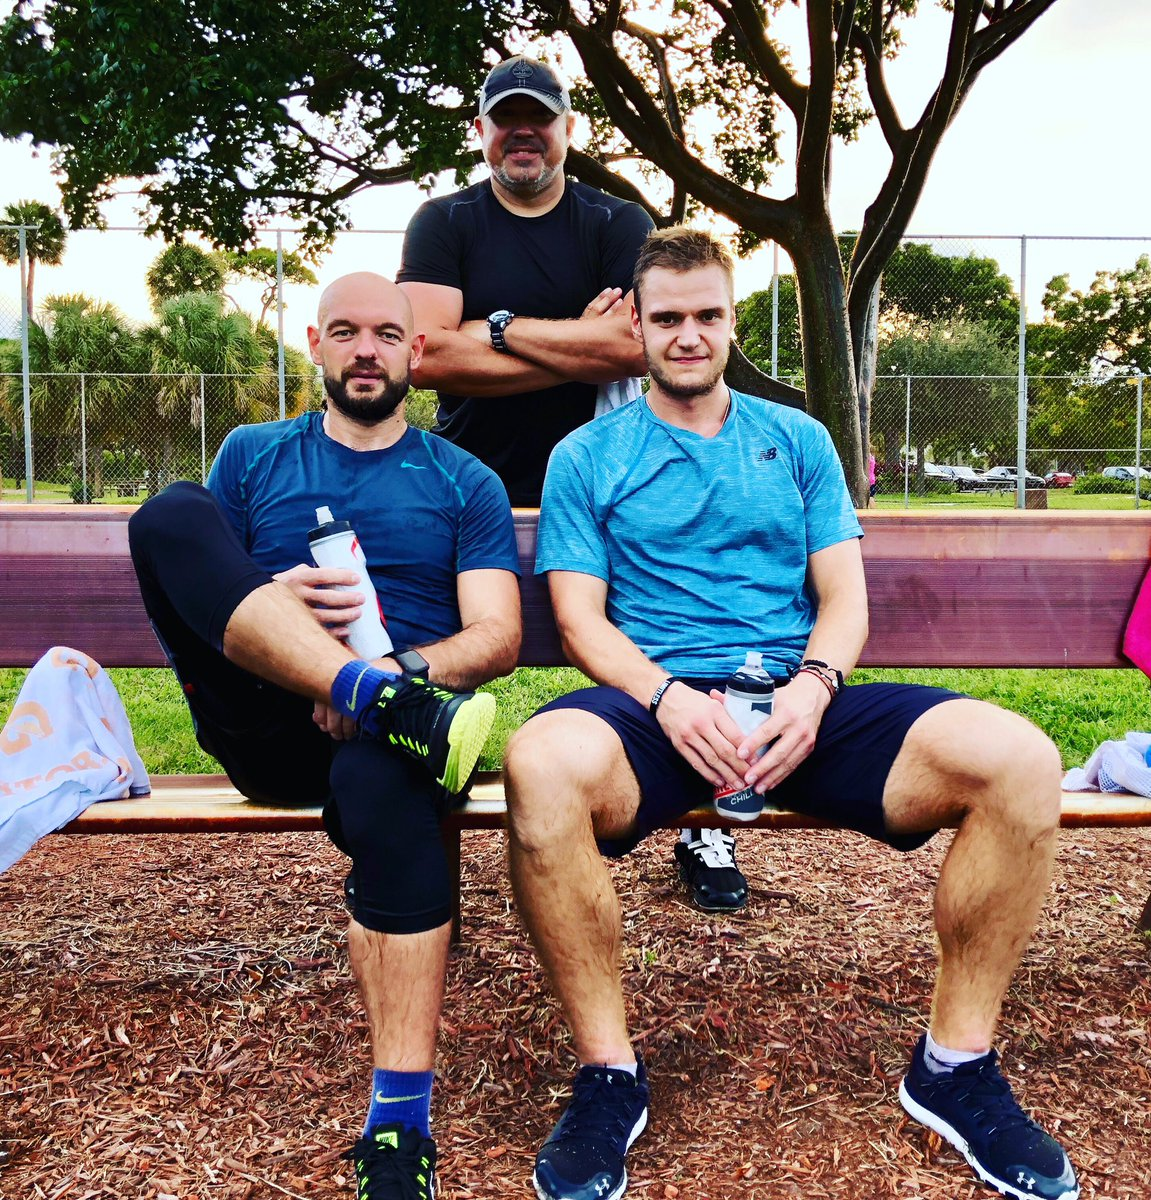 Me and my Boys...Two hardest working men in hockey...after ta-ta-ta workout...   I'm privileged to spend some time training you guys this summer...@marki79red @barkovsasha #hockeylegends #summertraining #hardwork #давайблять <br>http://pic.twitter.com/0eBM9SO5sL